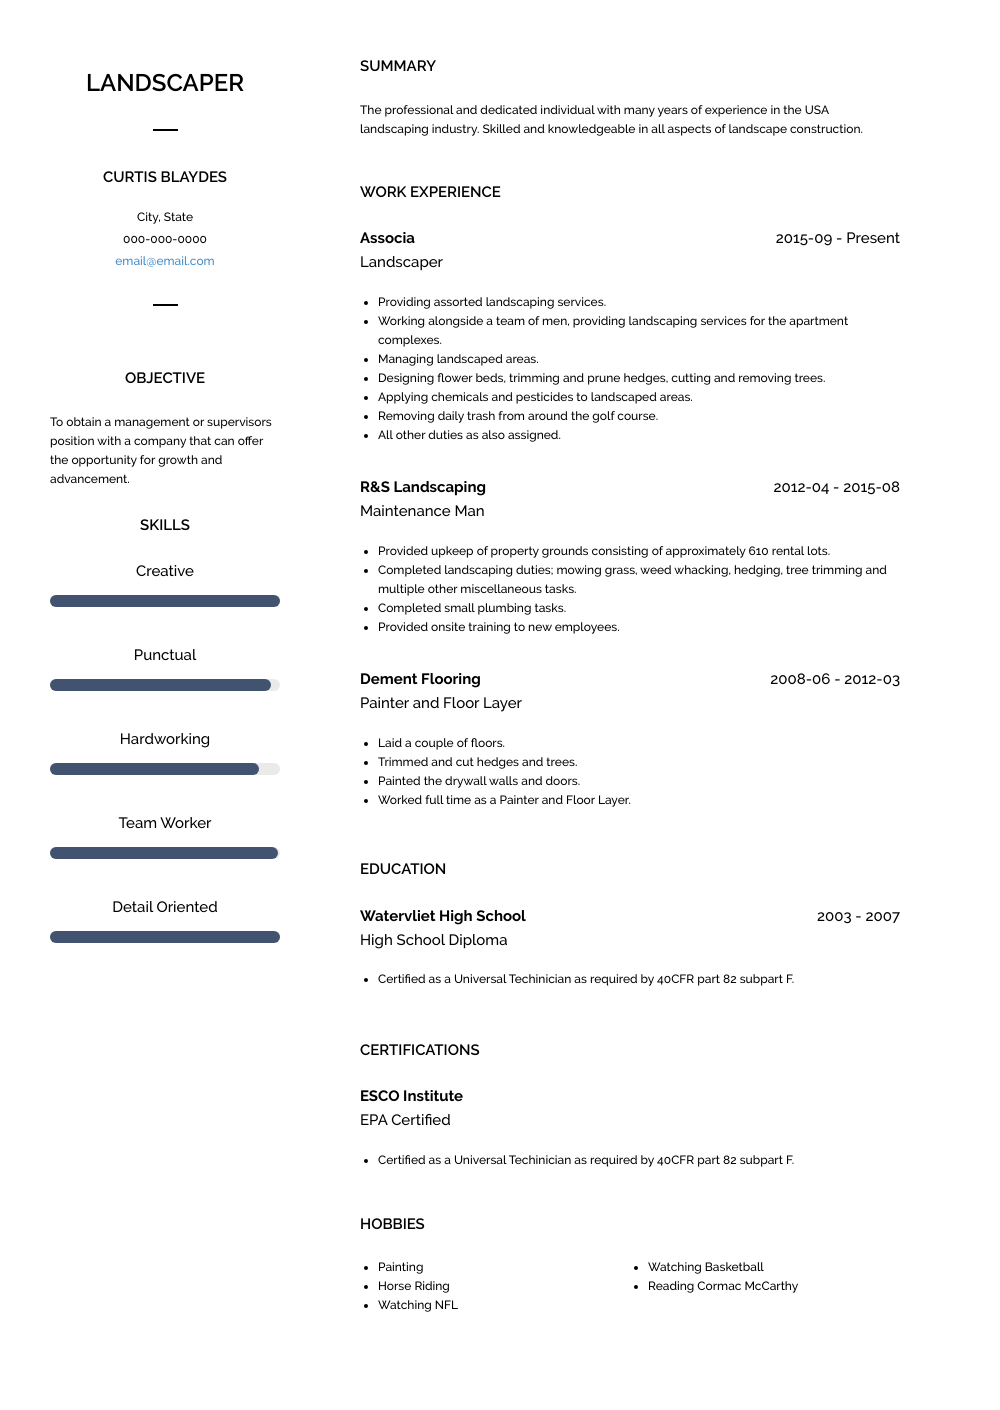 Landscaper Resume Sample and Template